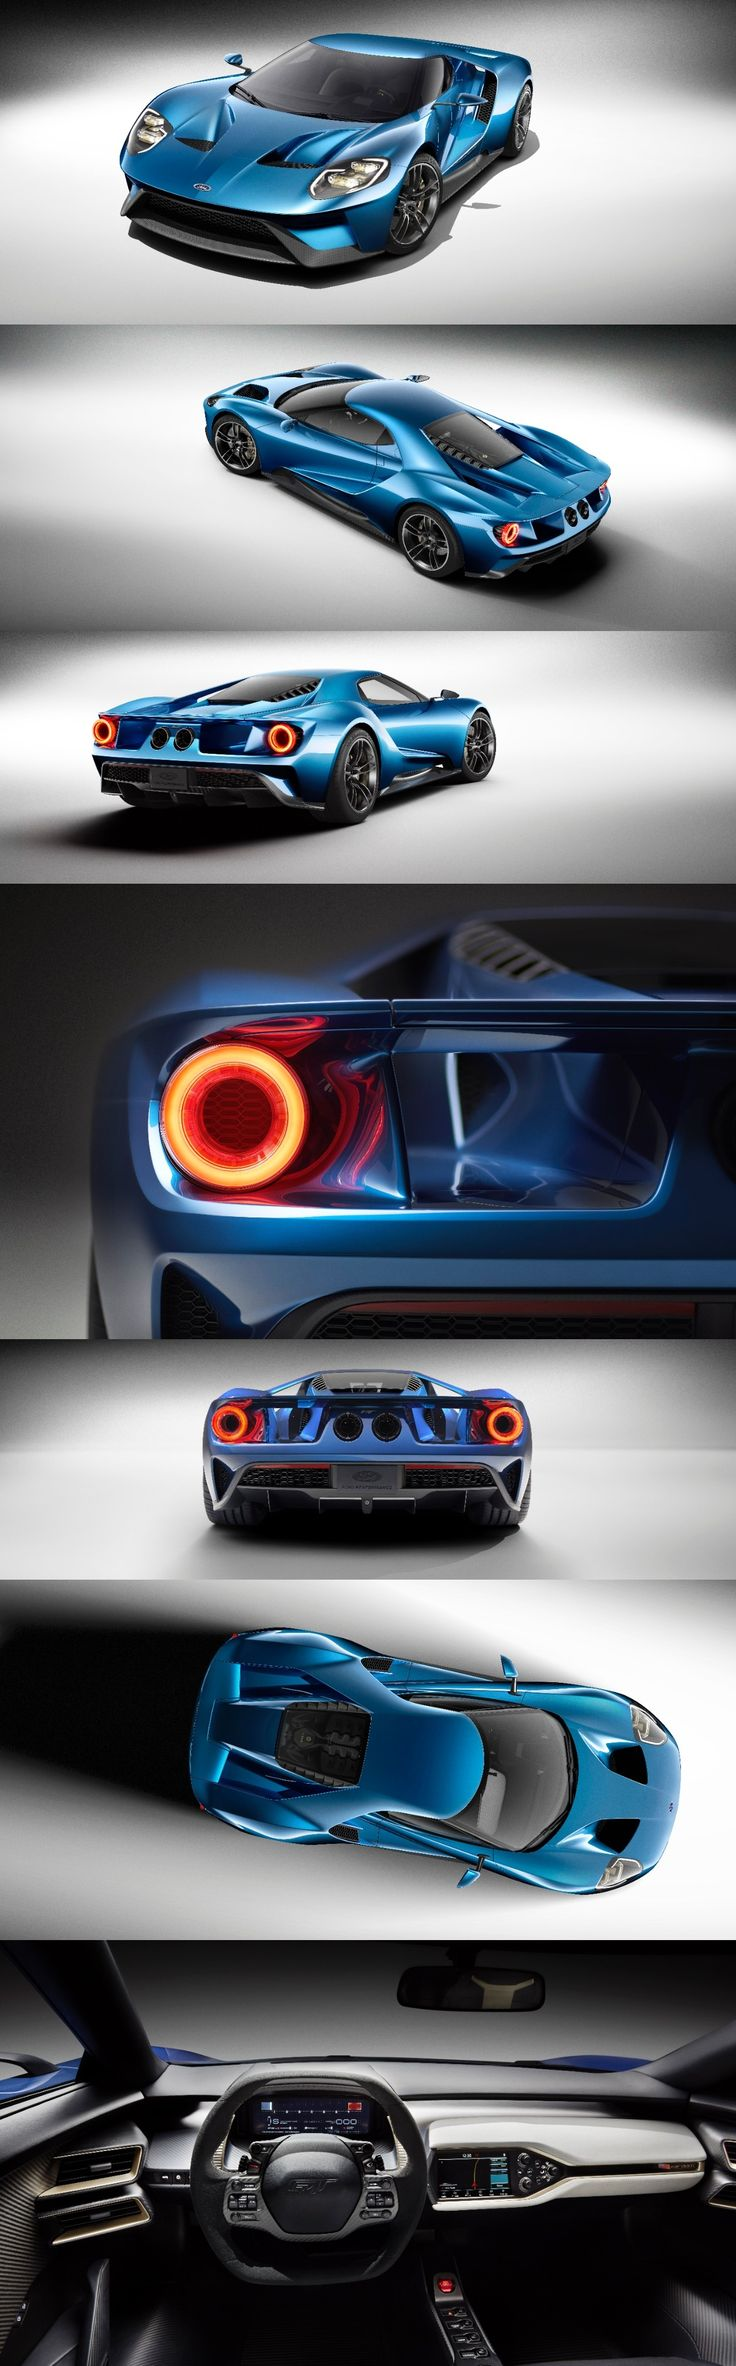 2016 Ford GT ✏✏✏✏✏✏✏✏✏✏✏✏✏✏✏✏ AUTRES VEHICULES - OTHER VEHICLES ☞ https://fr.pinterest.com/barbierjeanf/pin-index-voitures-v%C3%A9hicules/ ══════════════════════ BIJOUX ☞ https://www.facebook.com/media/set/?set=a.1351591571533839&type=1&l=bb0129771f ✏✏✏✏✏✏✏✏✏✏✏✏✏✏✏✏